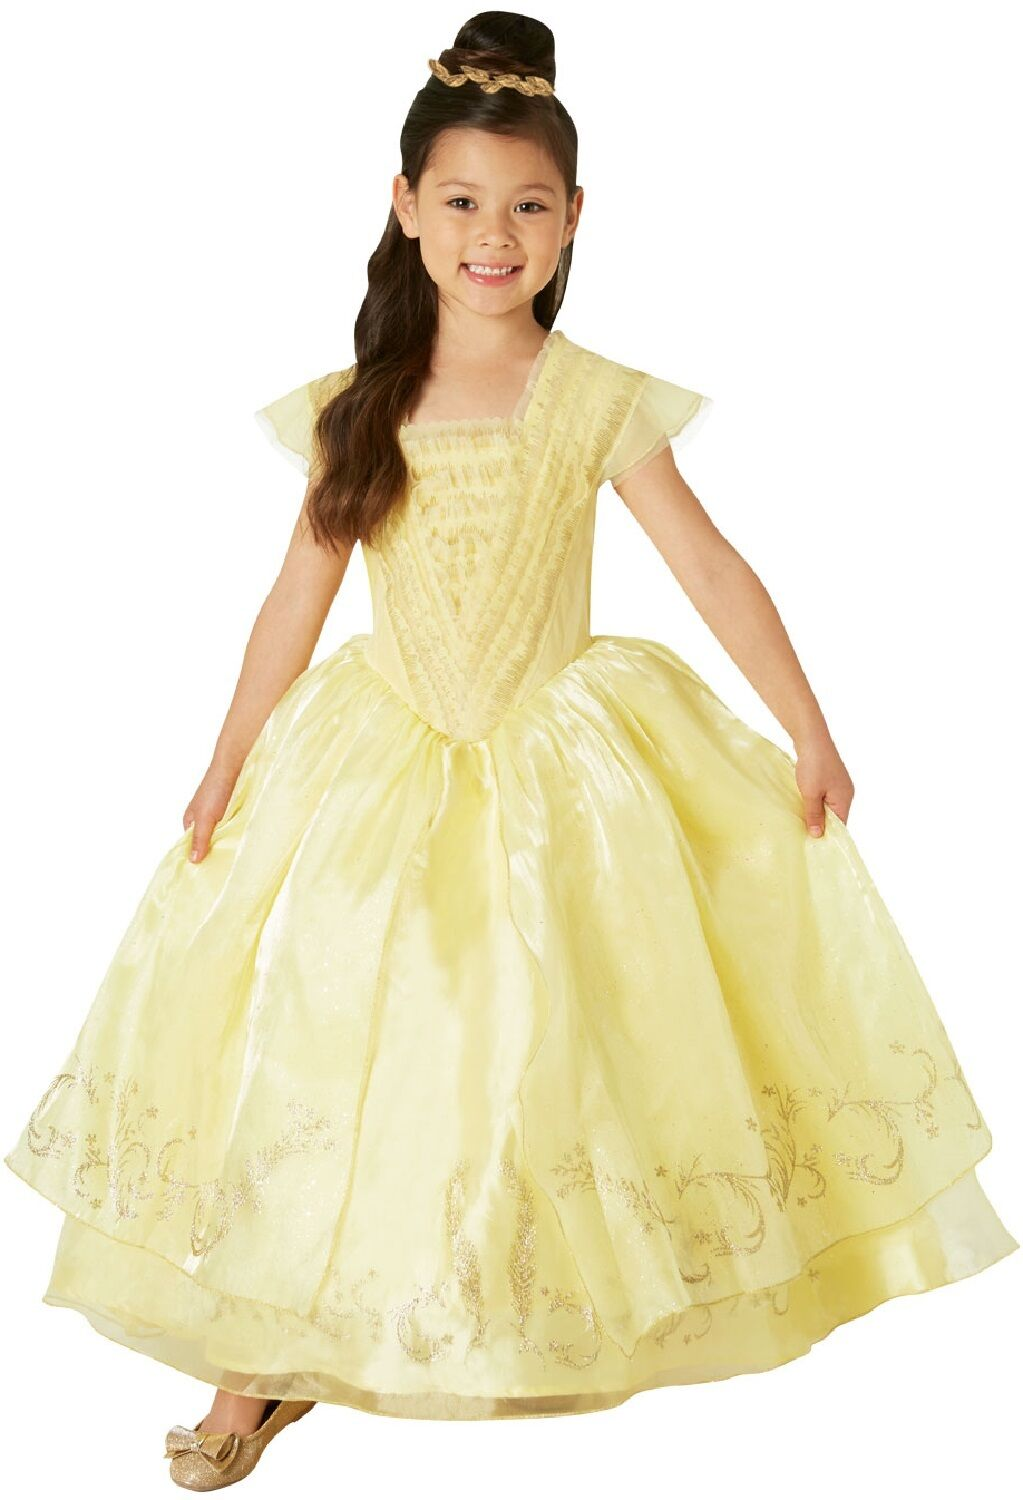 3fe928958 Girls Premium Disney Princess Belle Beauty and the Beast Dress Costume  Outfit